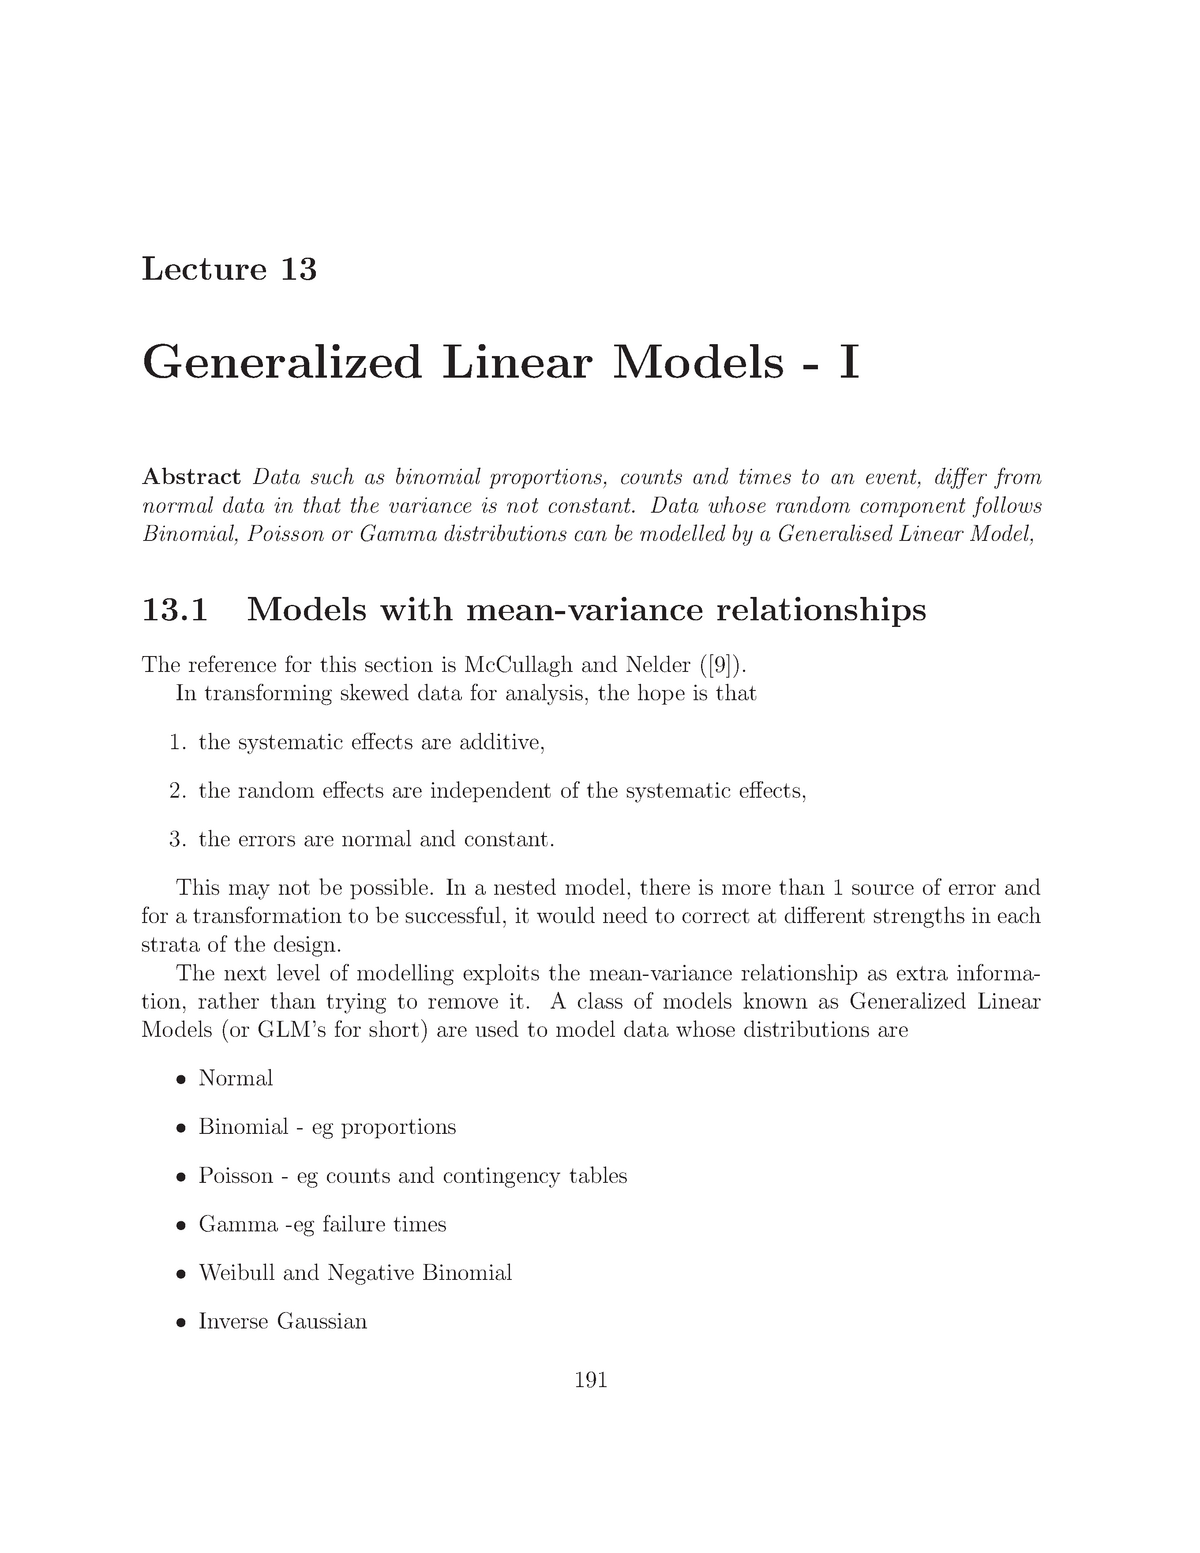 STAT 300 Lecture 13 - Generalized Linear Models I - STAT300